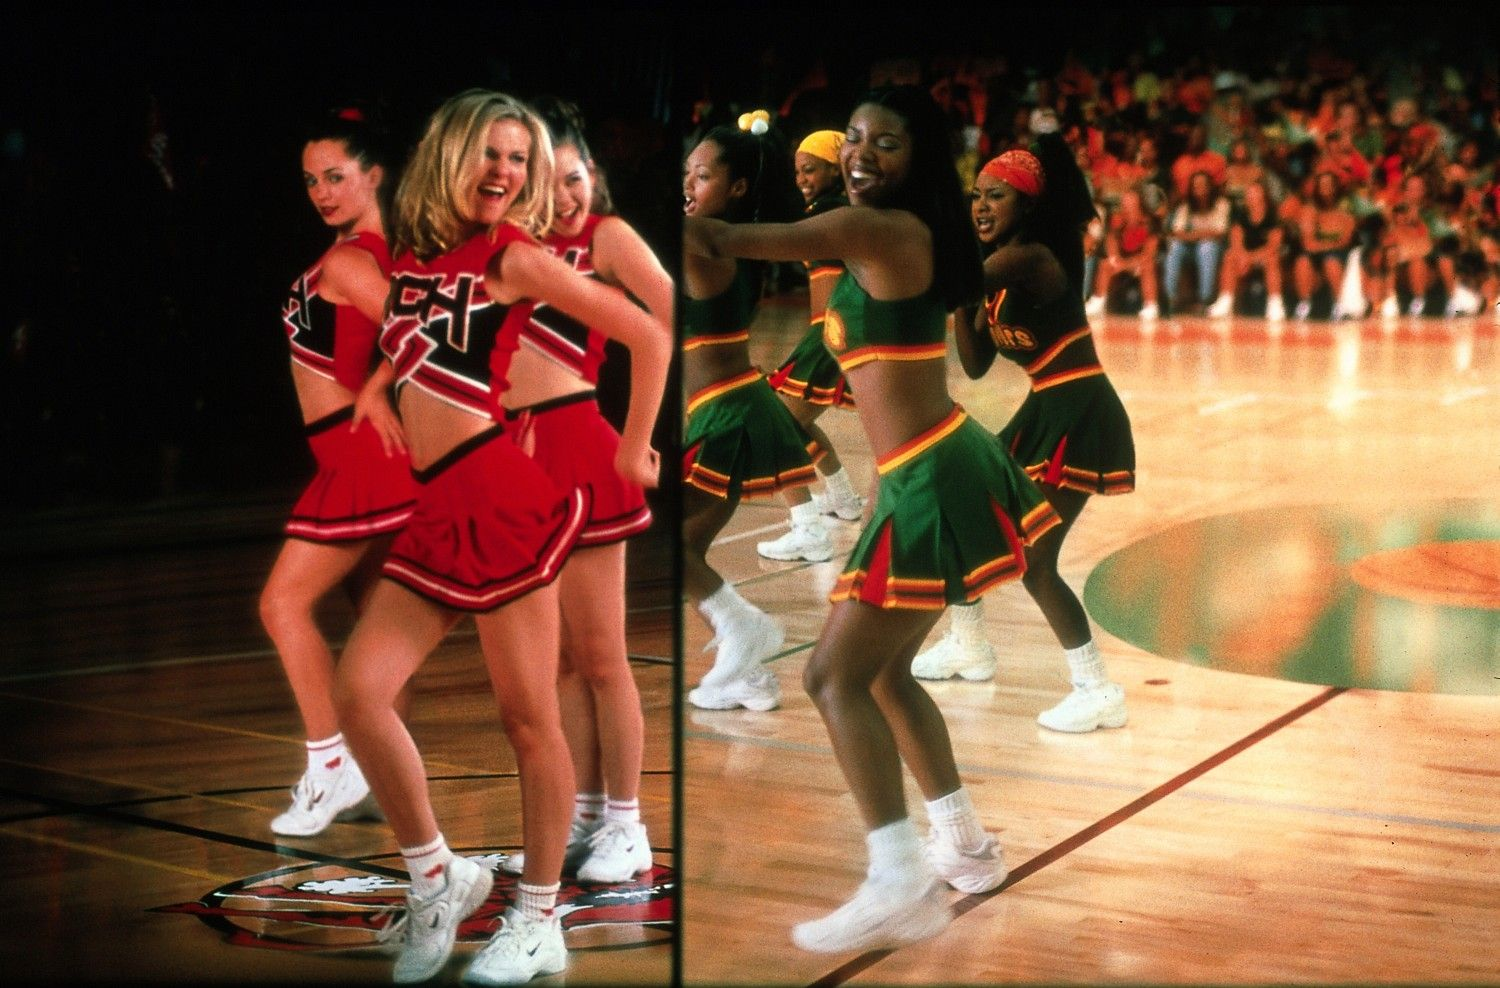 The Cast of Bring It On Reunited for a Photo, No One Has Aged recommend